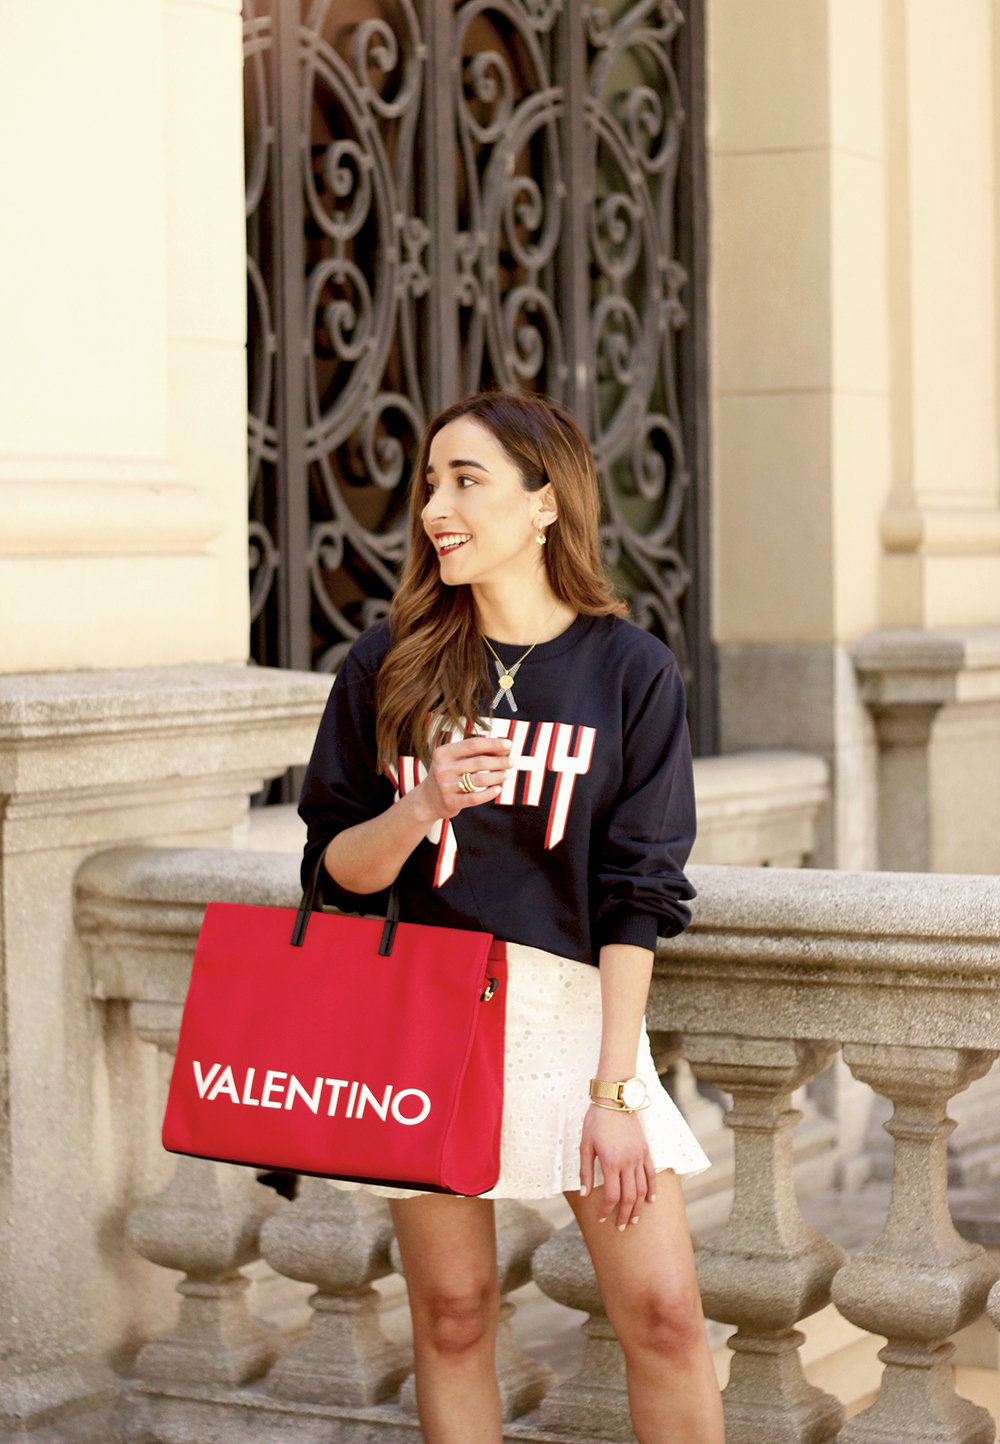 white skirt sweatshirt high heels valentinohandbags street style spring outfit12